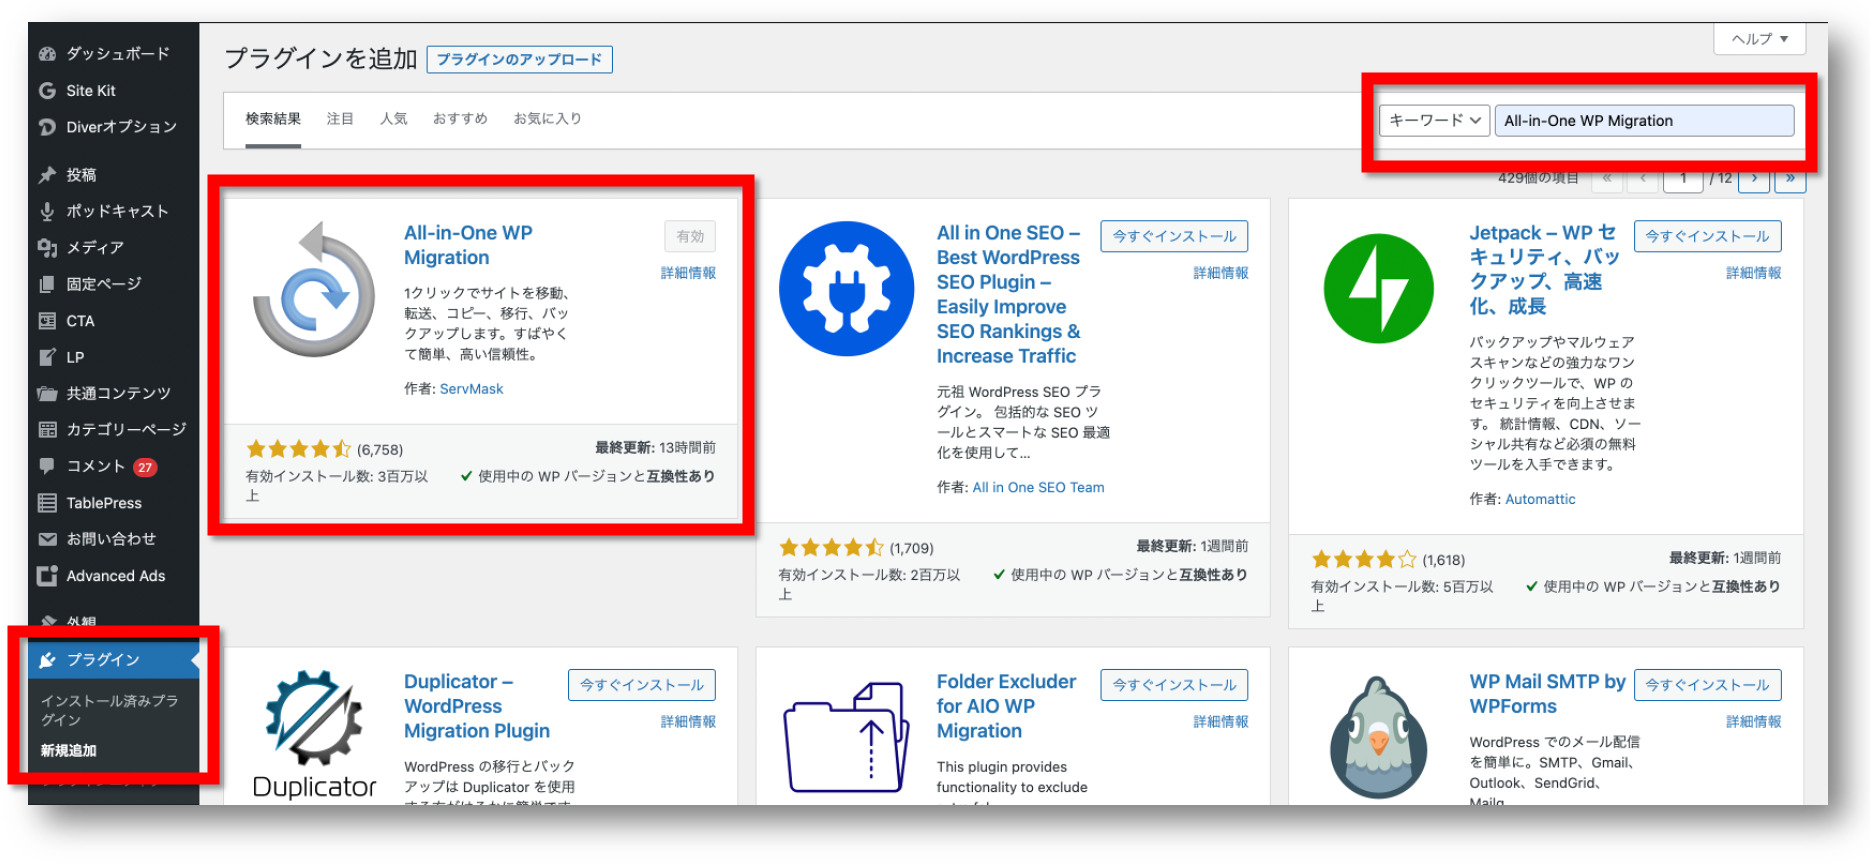 All-in-One WP Migrationを使ったバックアップデータの作成とインポート方法